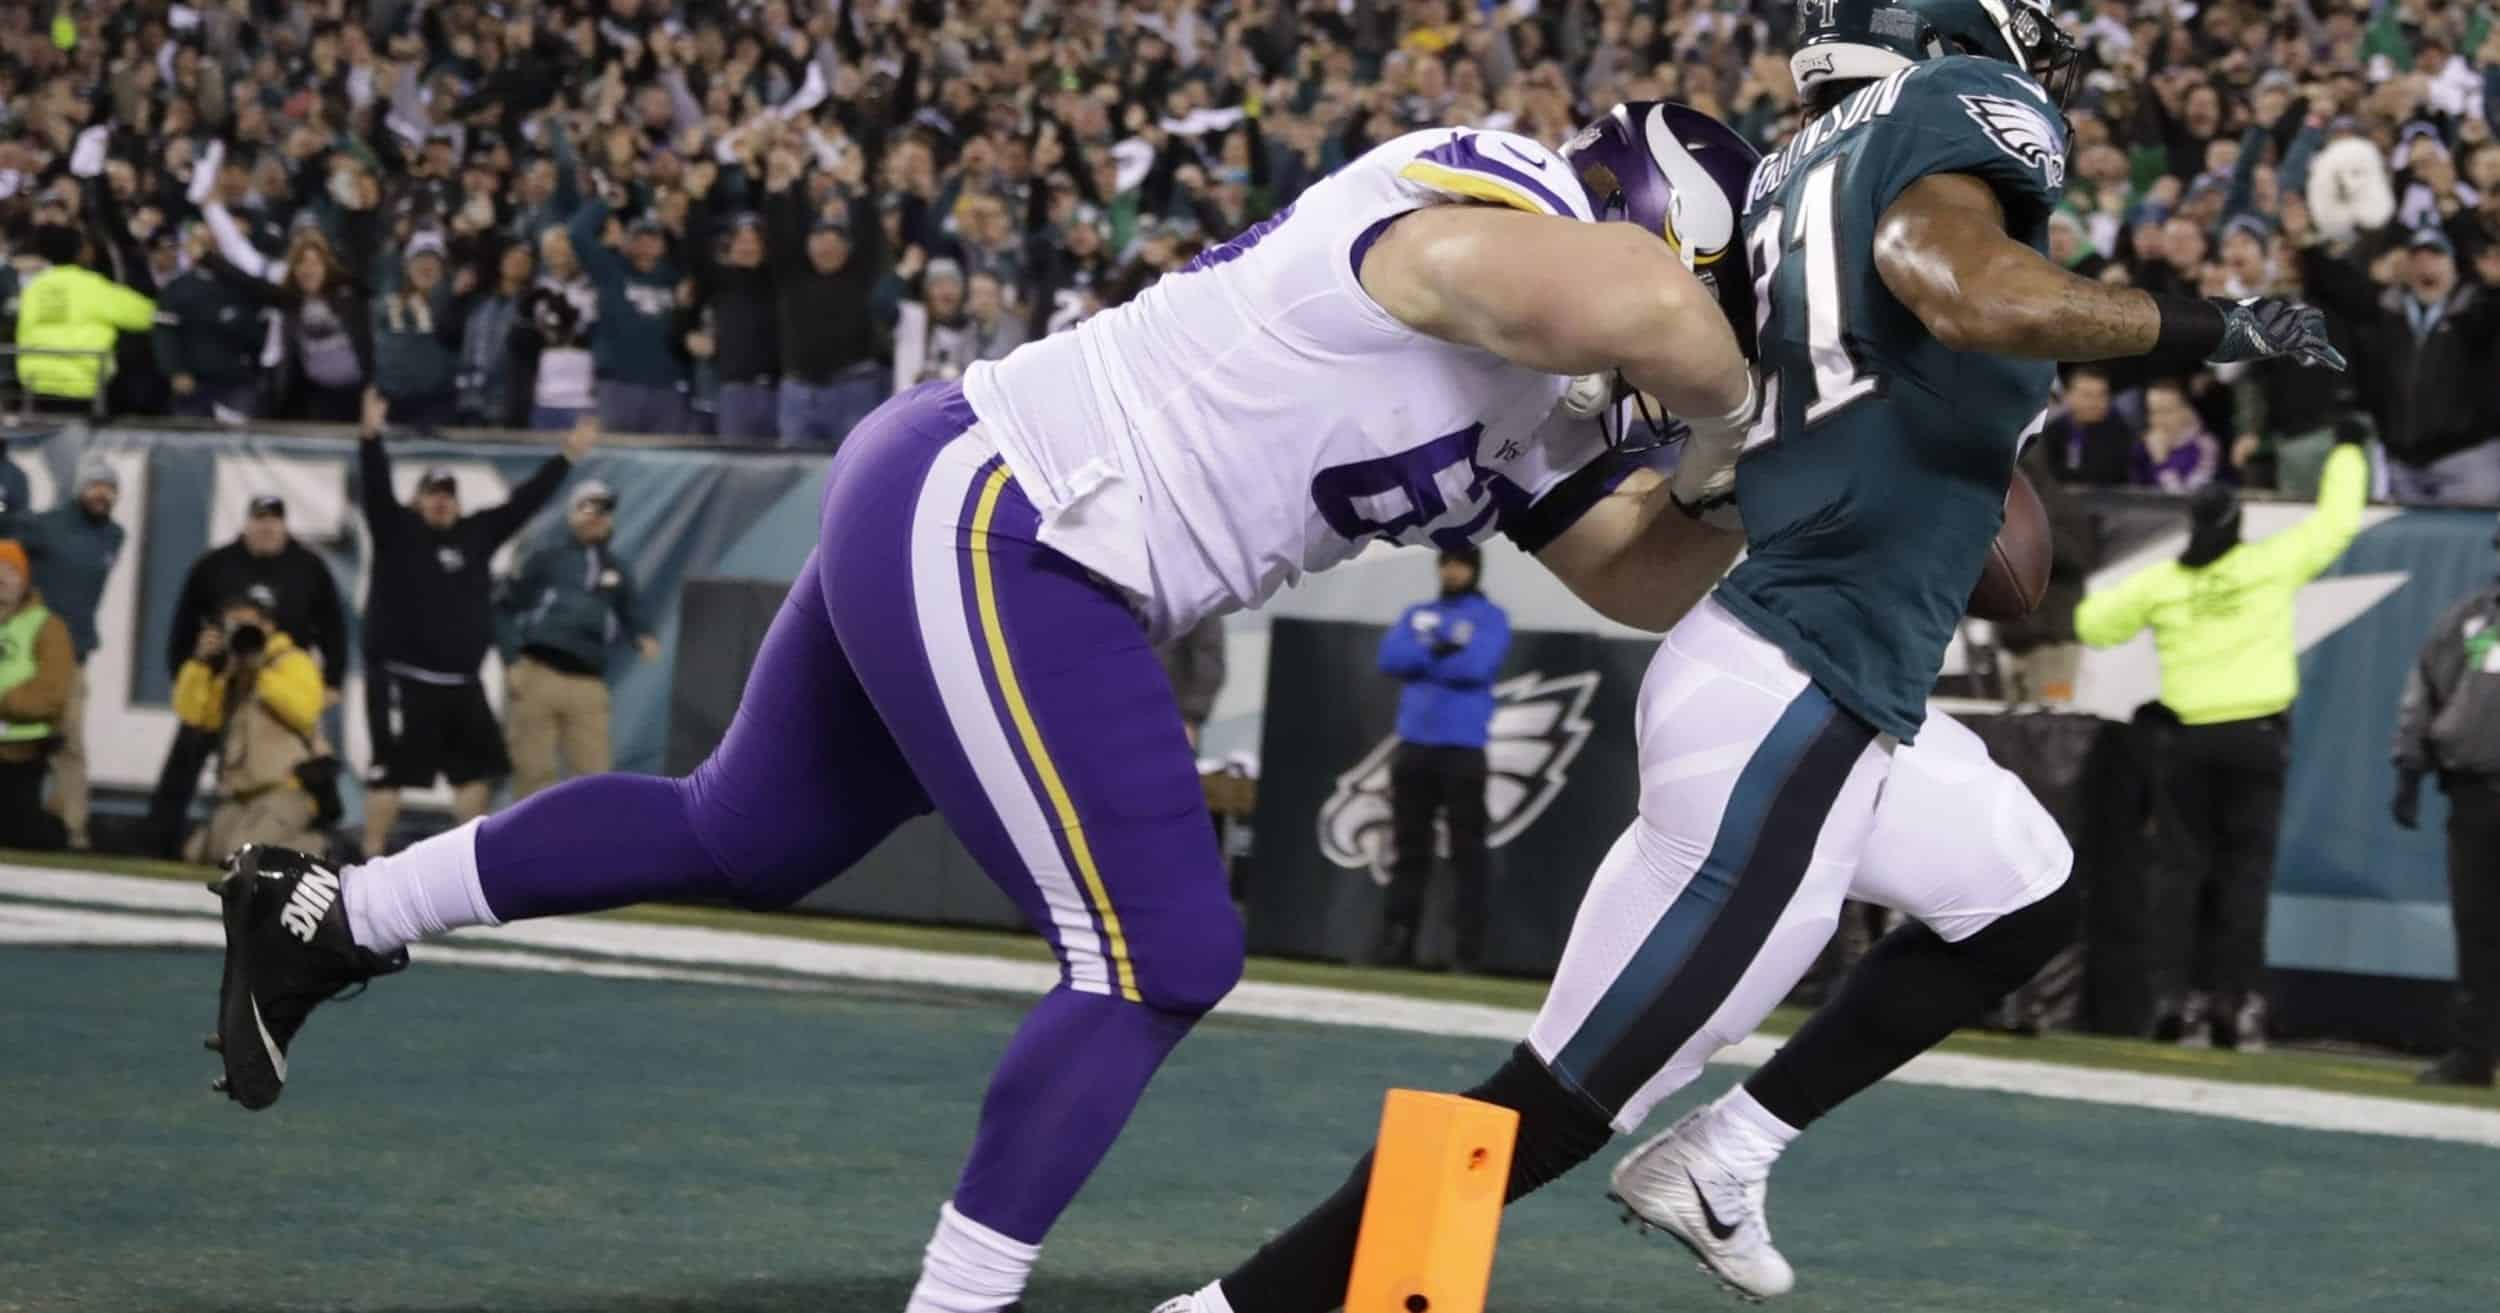 Minnesota Vikings at Philadelphia Eagles: Pat Elflein tackles Ronald Darby. Photo Credit: USA Today Sports